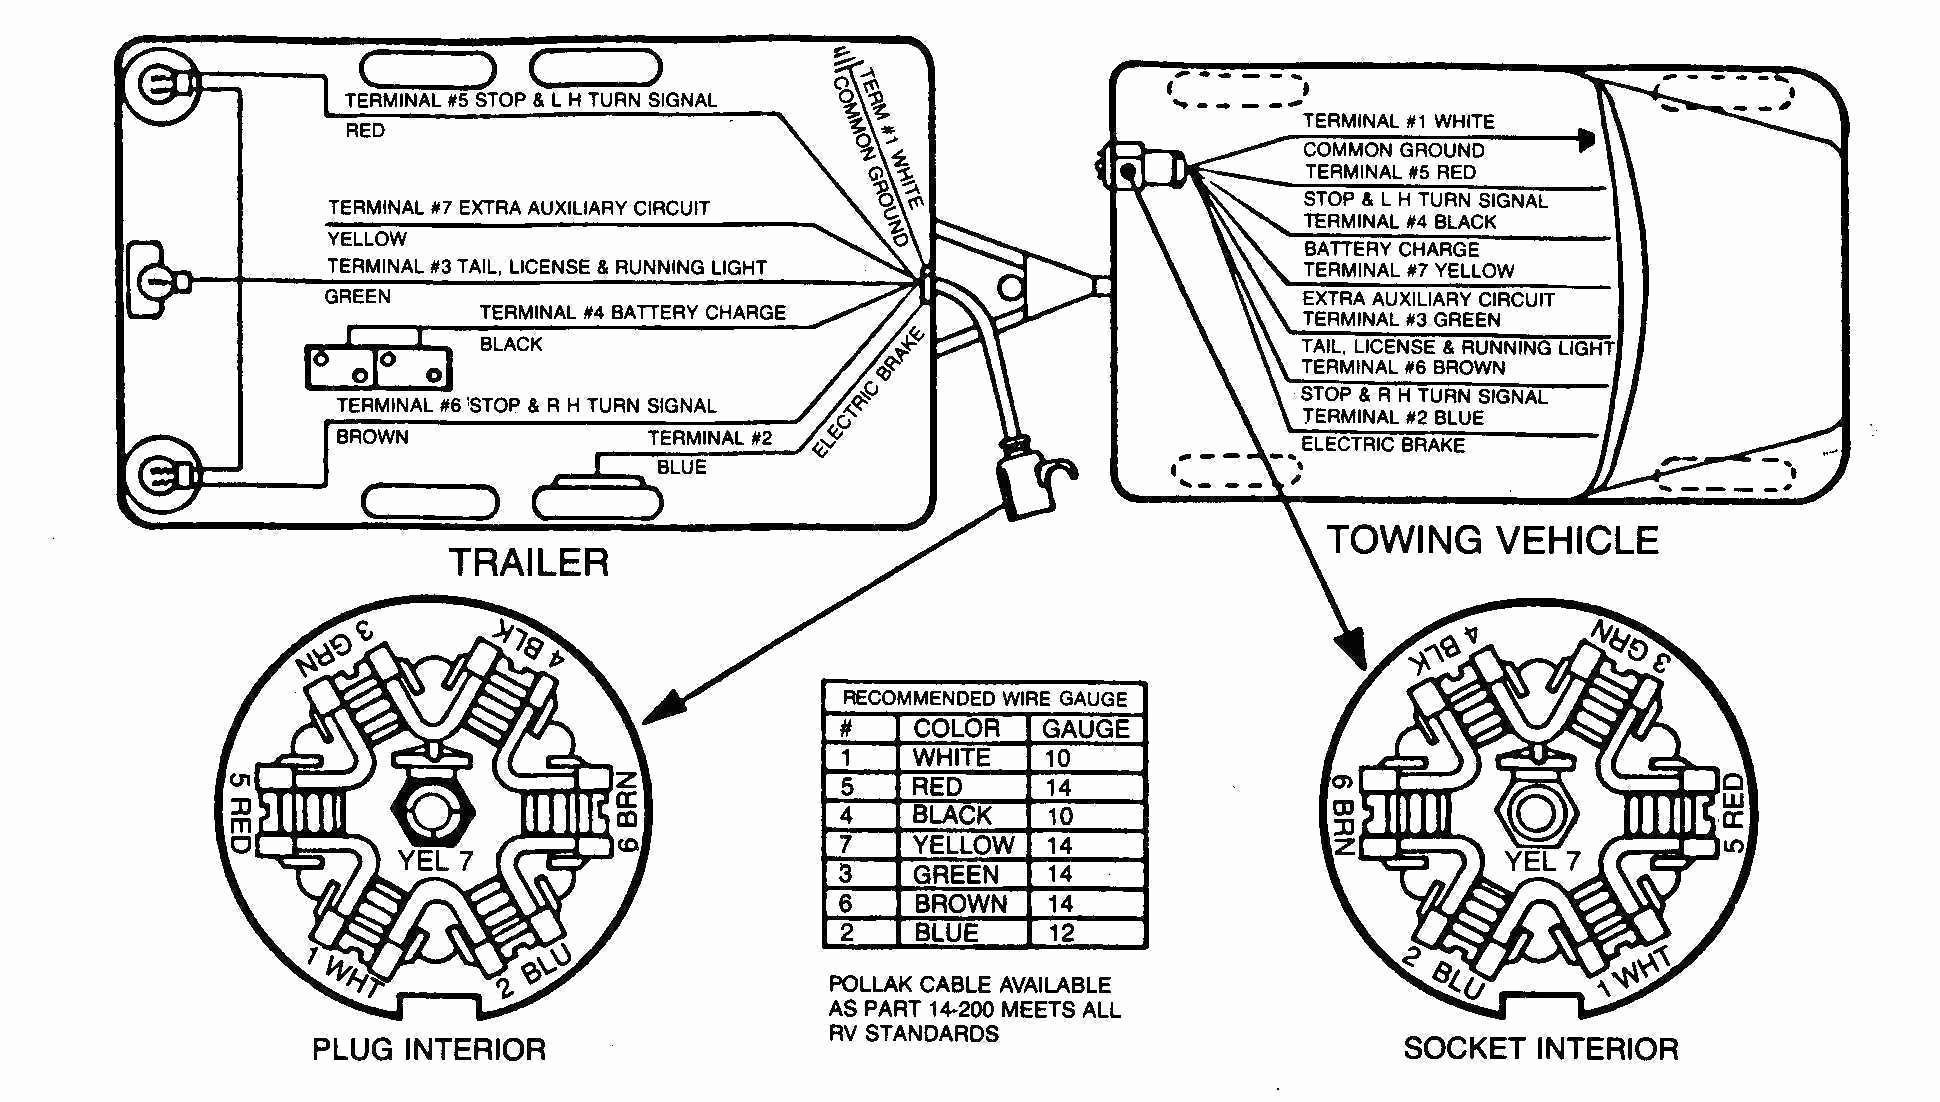 7 Pin Trailer Plug Wiring Diagram - Waidaigou - 7 Way Trailer Plug Wiring Diagram Ford